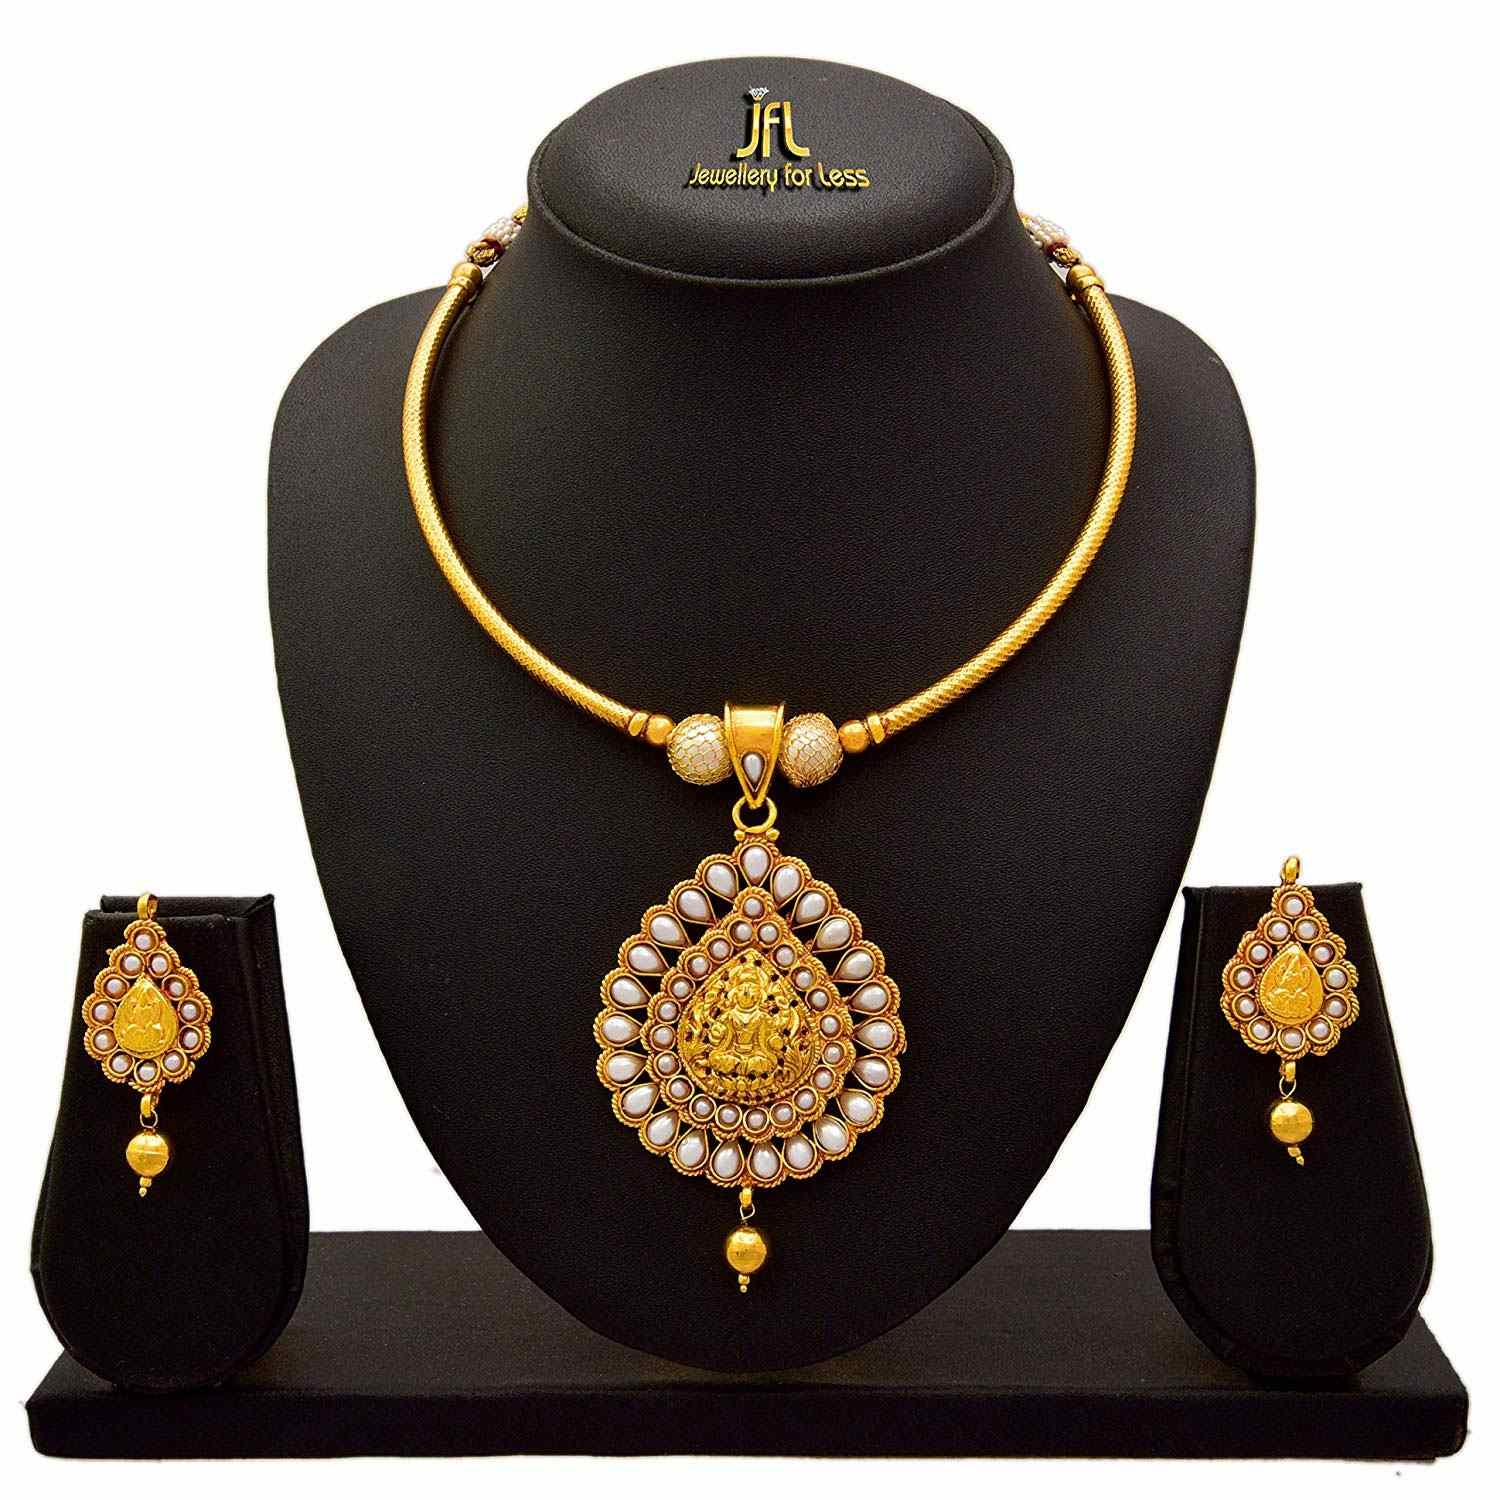 JFL - Traditional Ethnic One Gram Gold Plated Temple Goddess Laxmi Pearl Designer Necklace Set for Women.